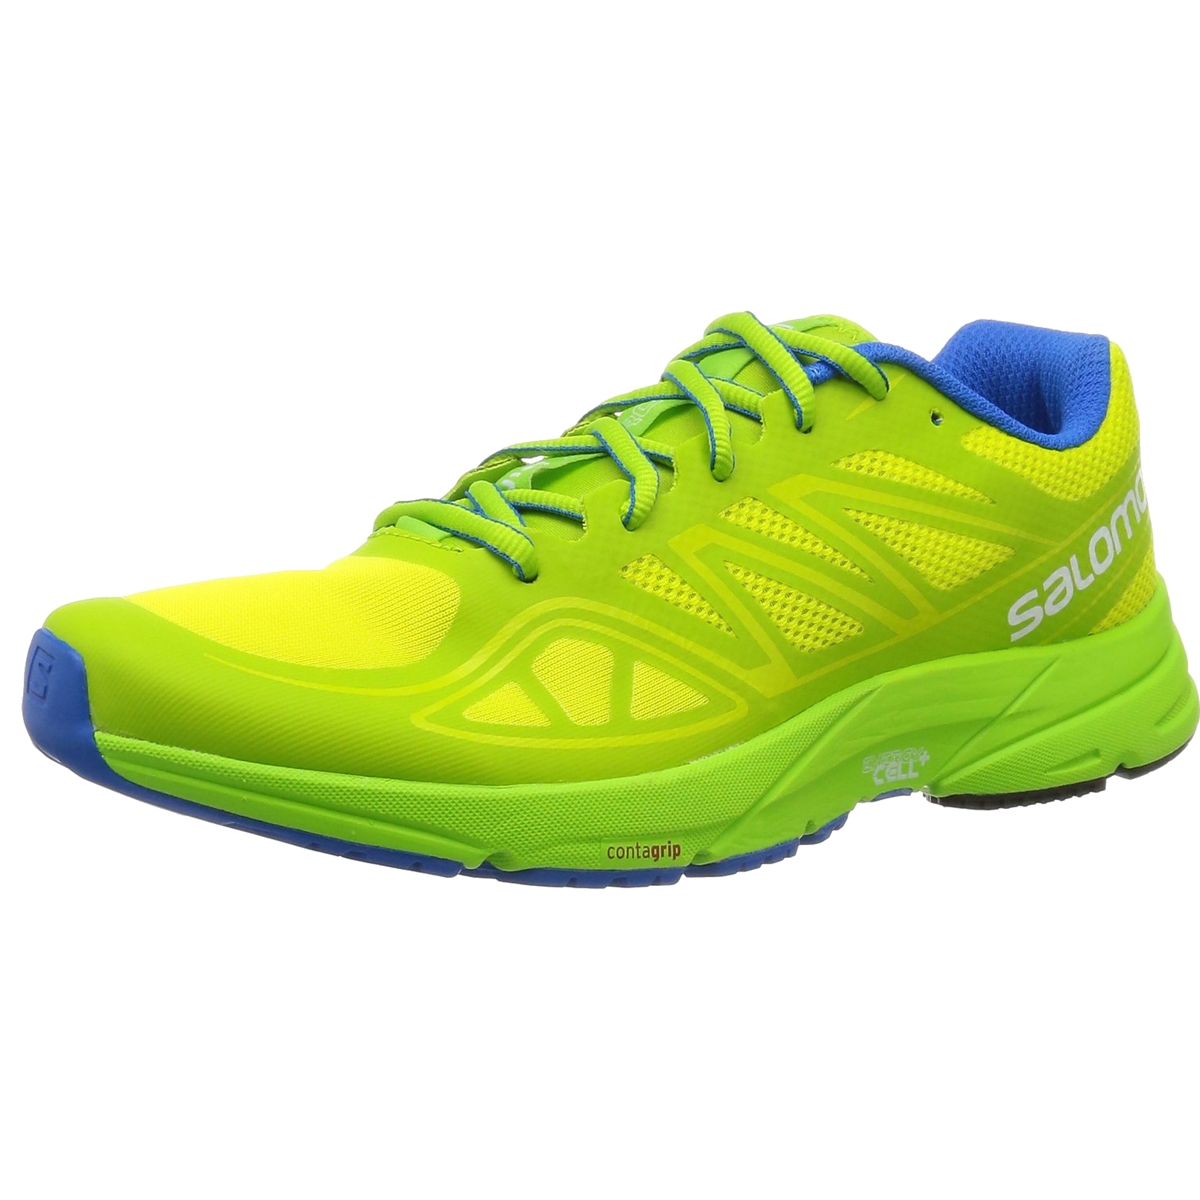 4fa7eddff91e Salomon SONIC AERO sonic Aero L37953500 running shoes Salomon 2016 model